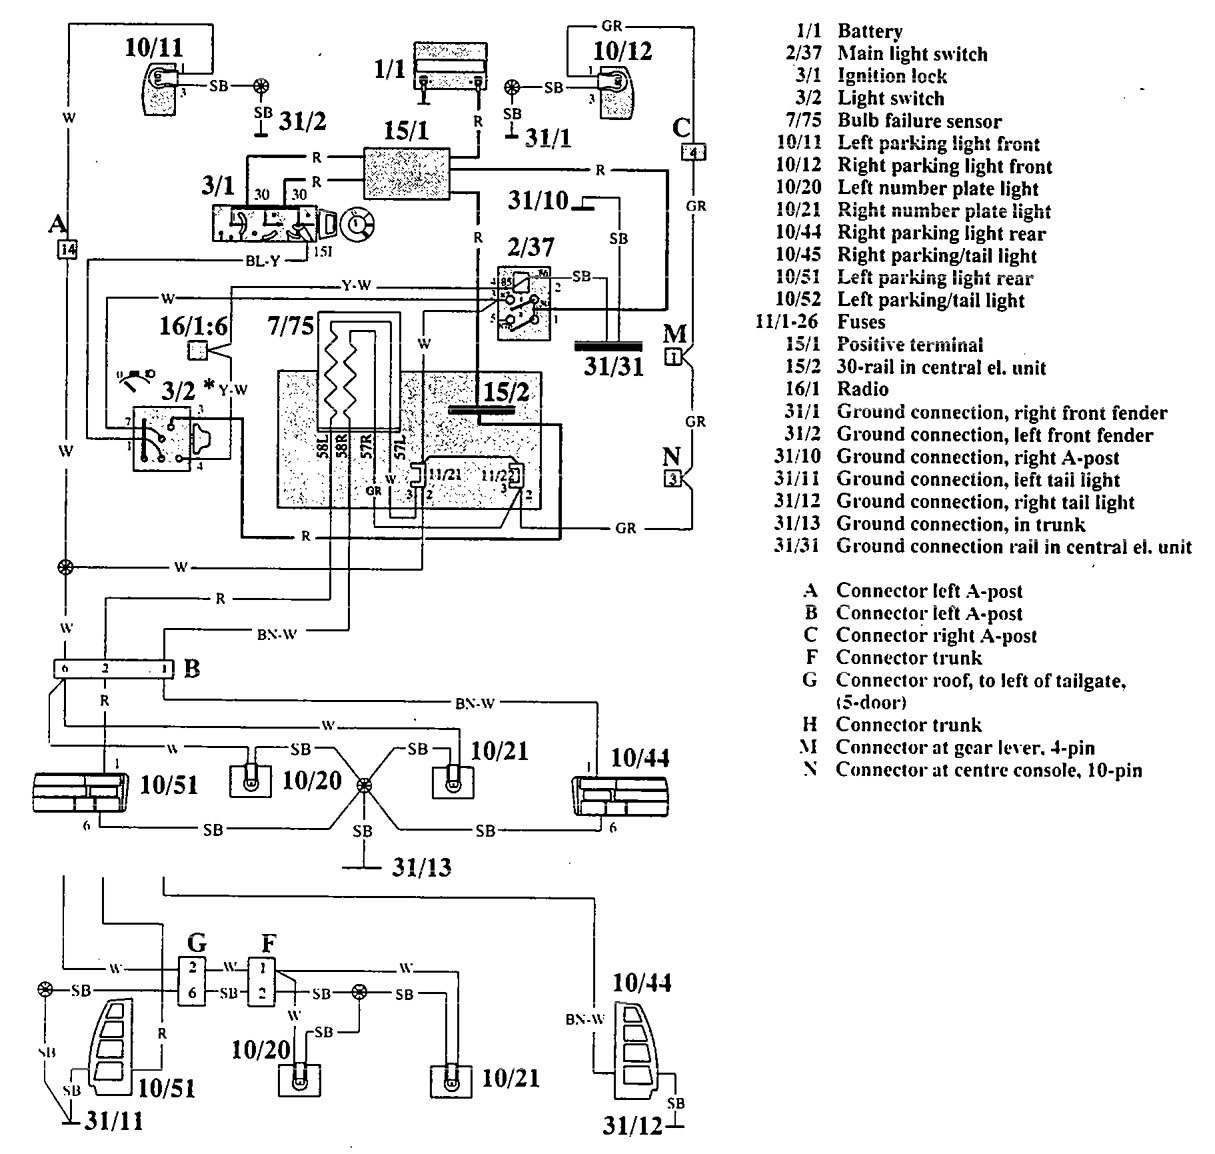 2001 gmc sonoma fuse box diagrams